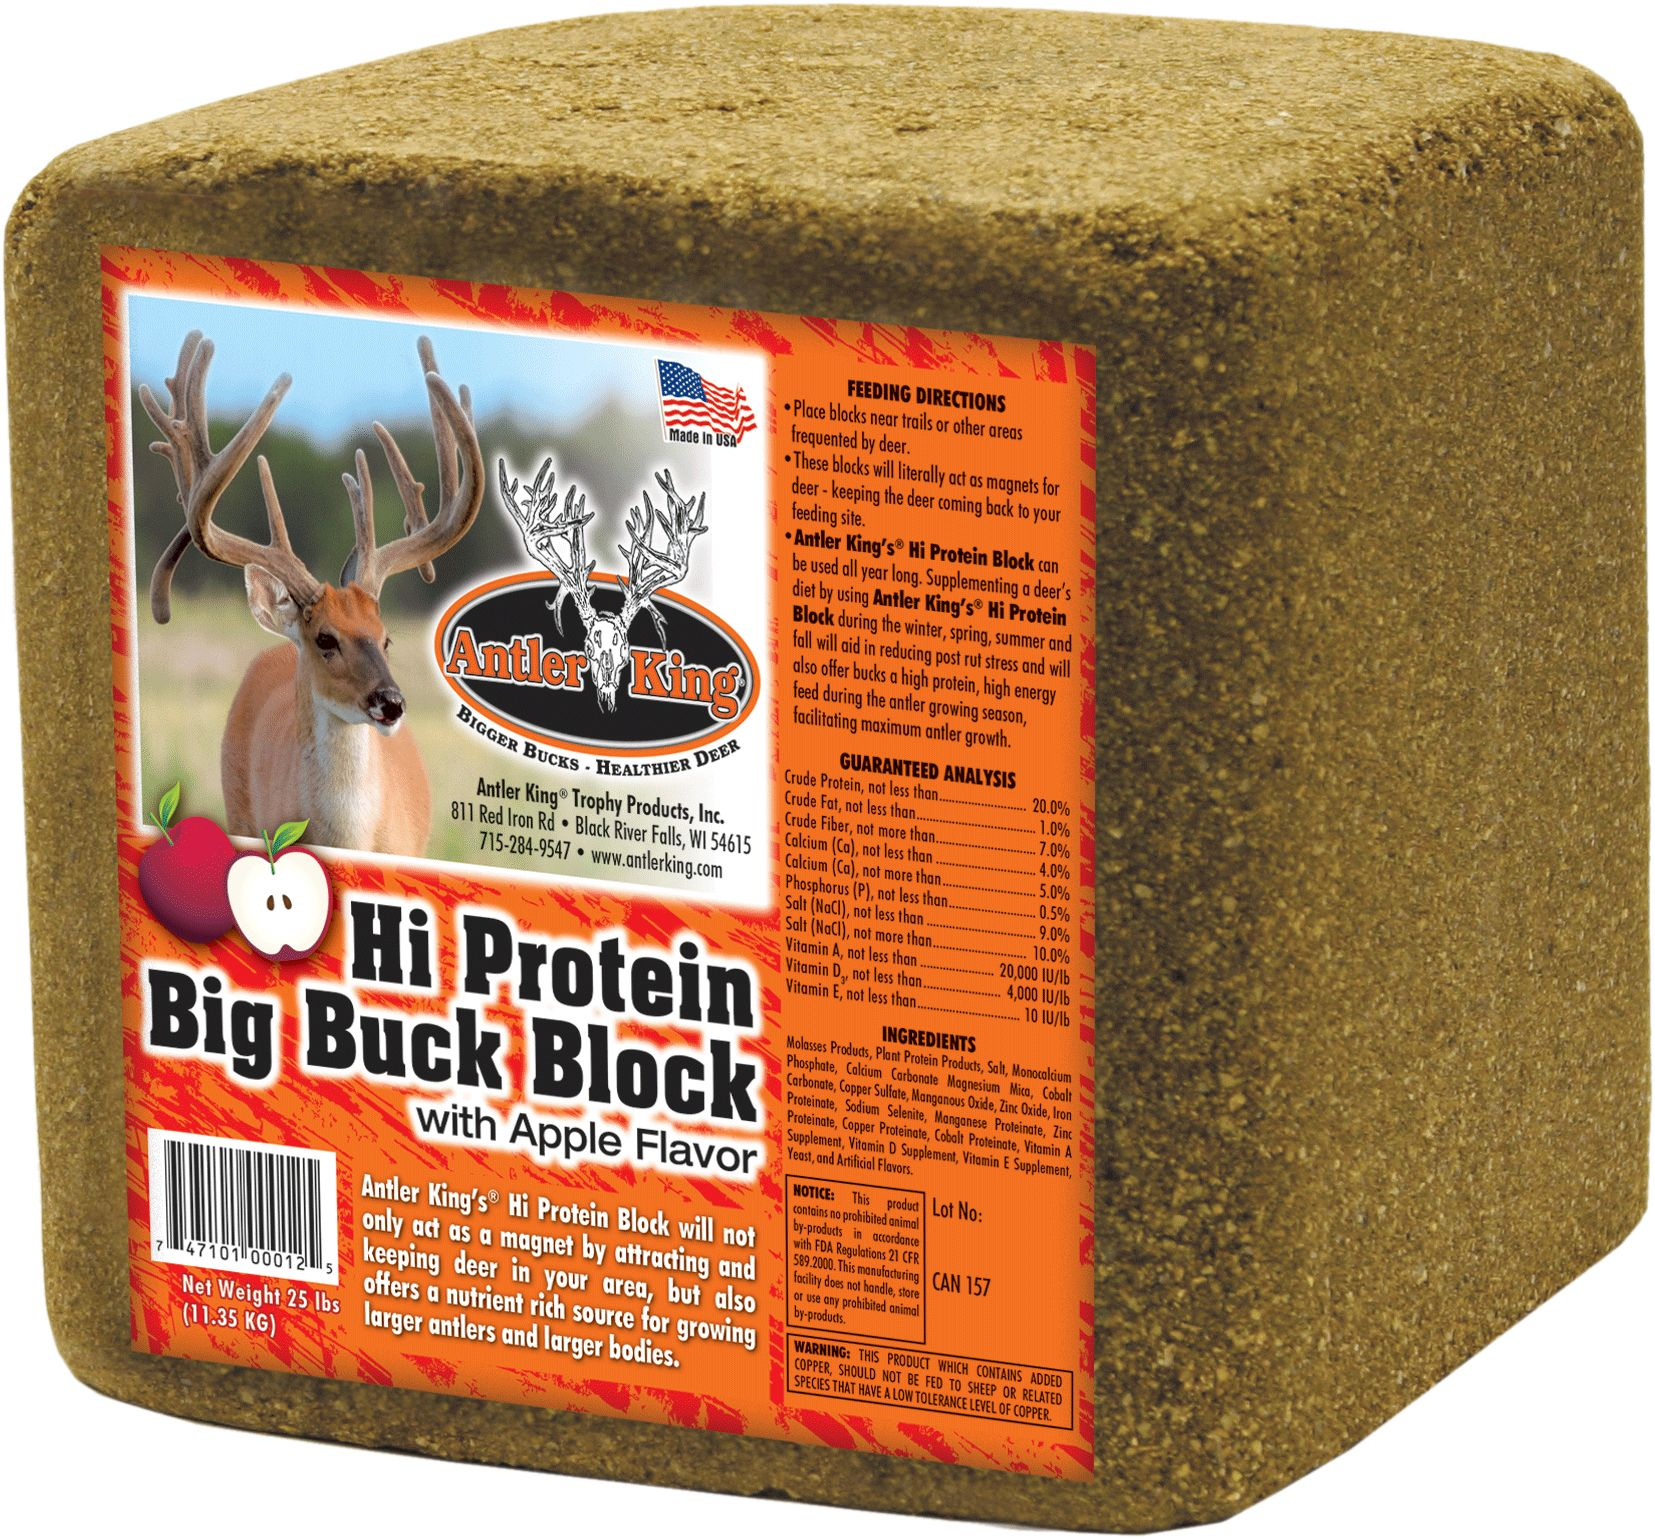 Antler King Hi Protein Big Buck Block thumbnail